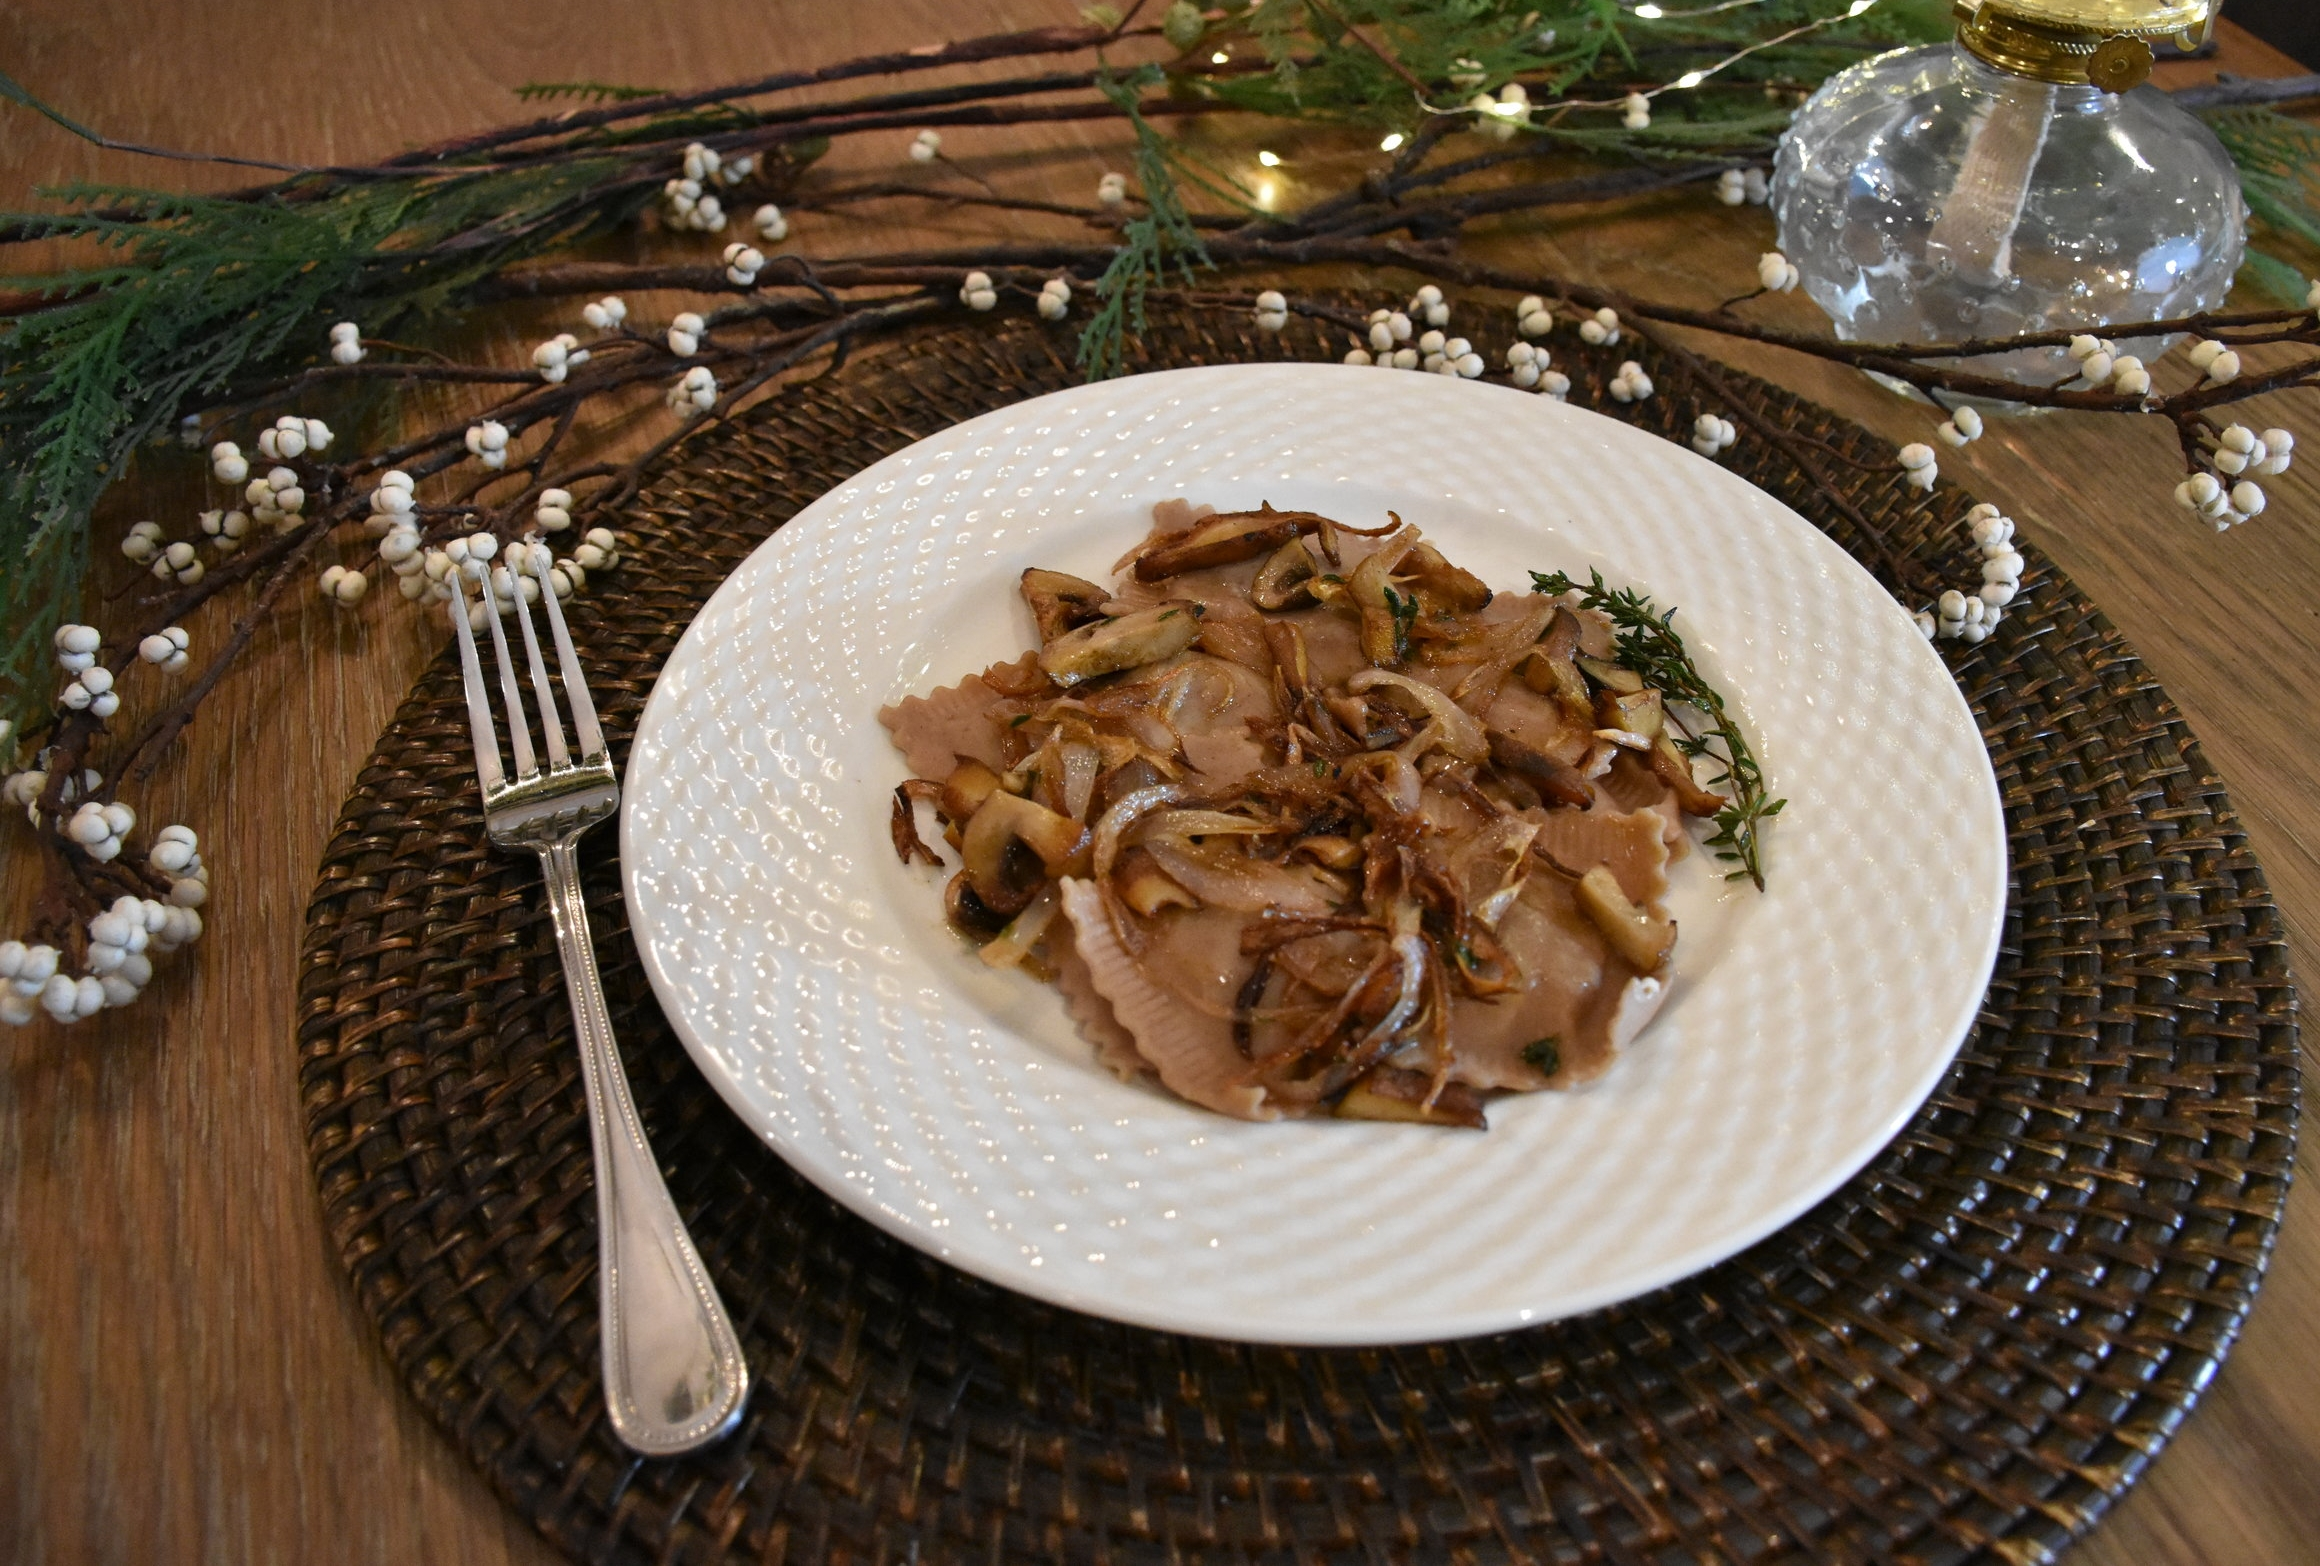 Valicenti Pasta Farm Recipe - Braised Chestnut Ravioli served with Sautéed Shallots, Wild Mushrooms, & Thyme